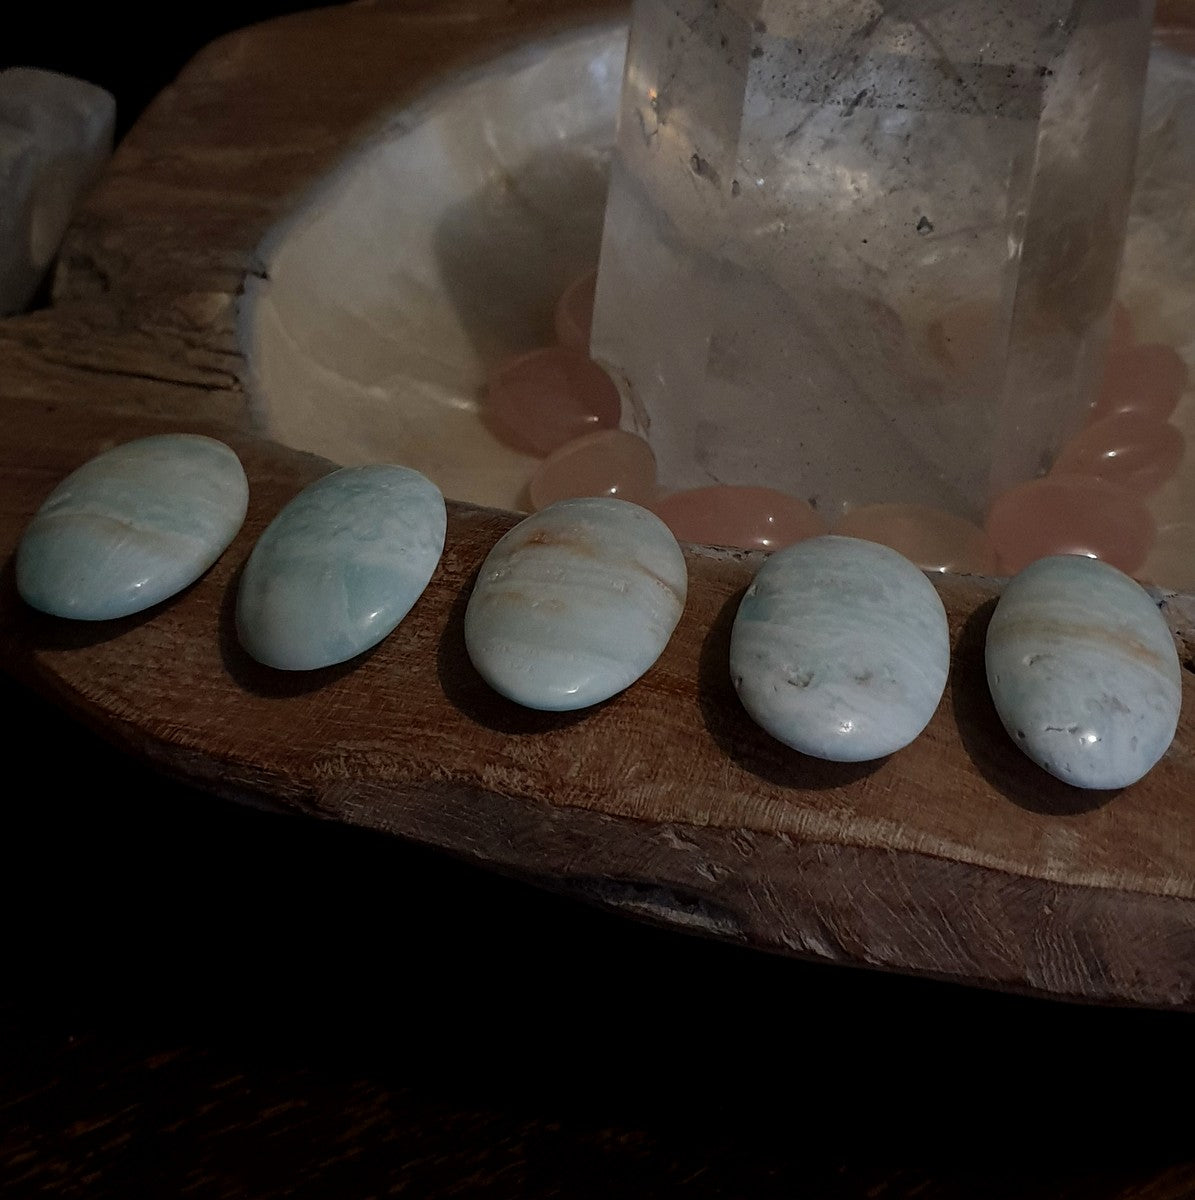 Blue Caribbean Calcite Worry Stone - Now at Illiom  Crystals - Afterpay Available